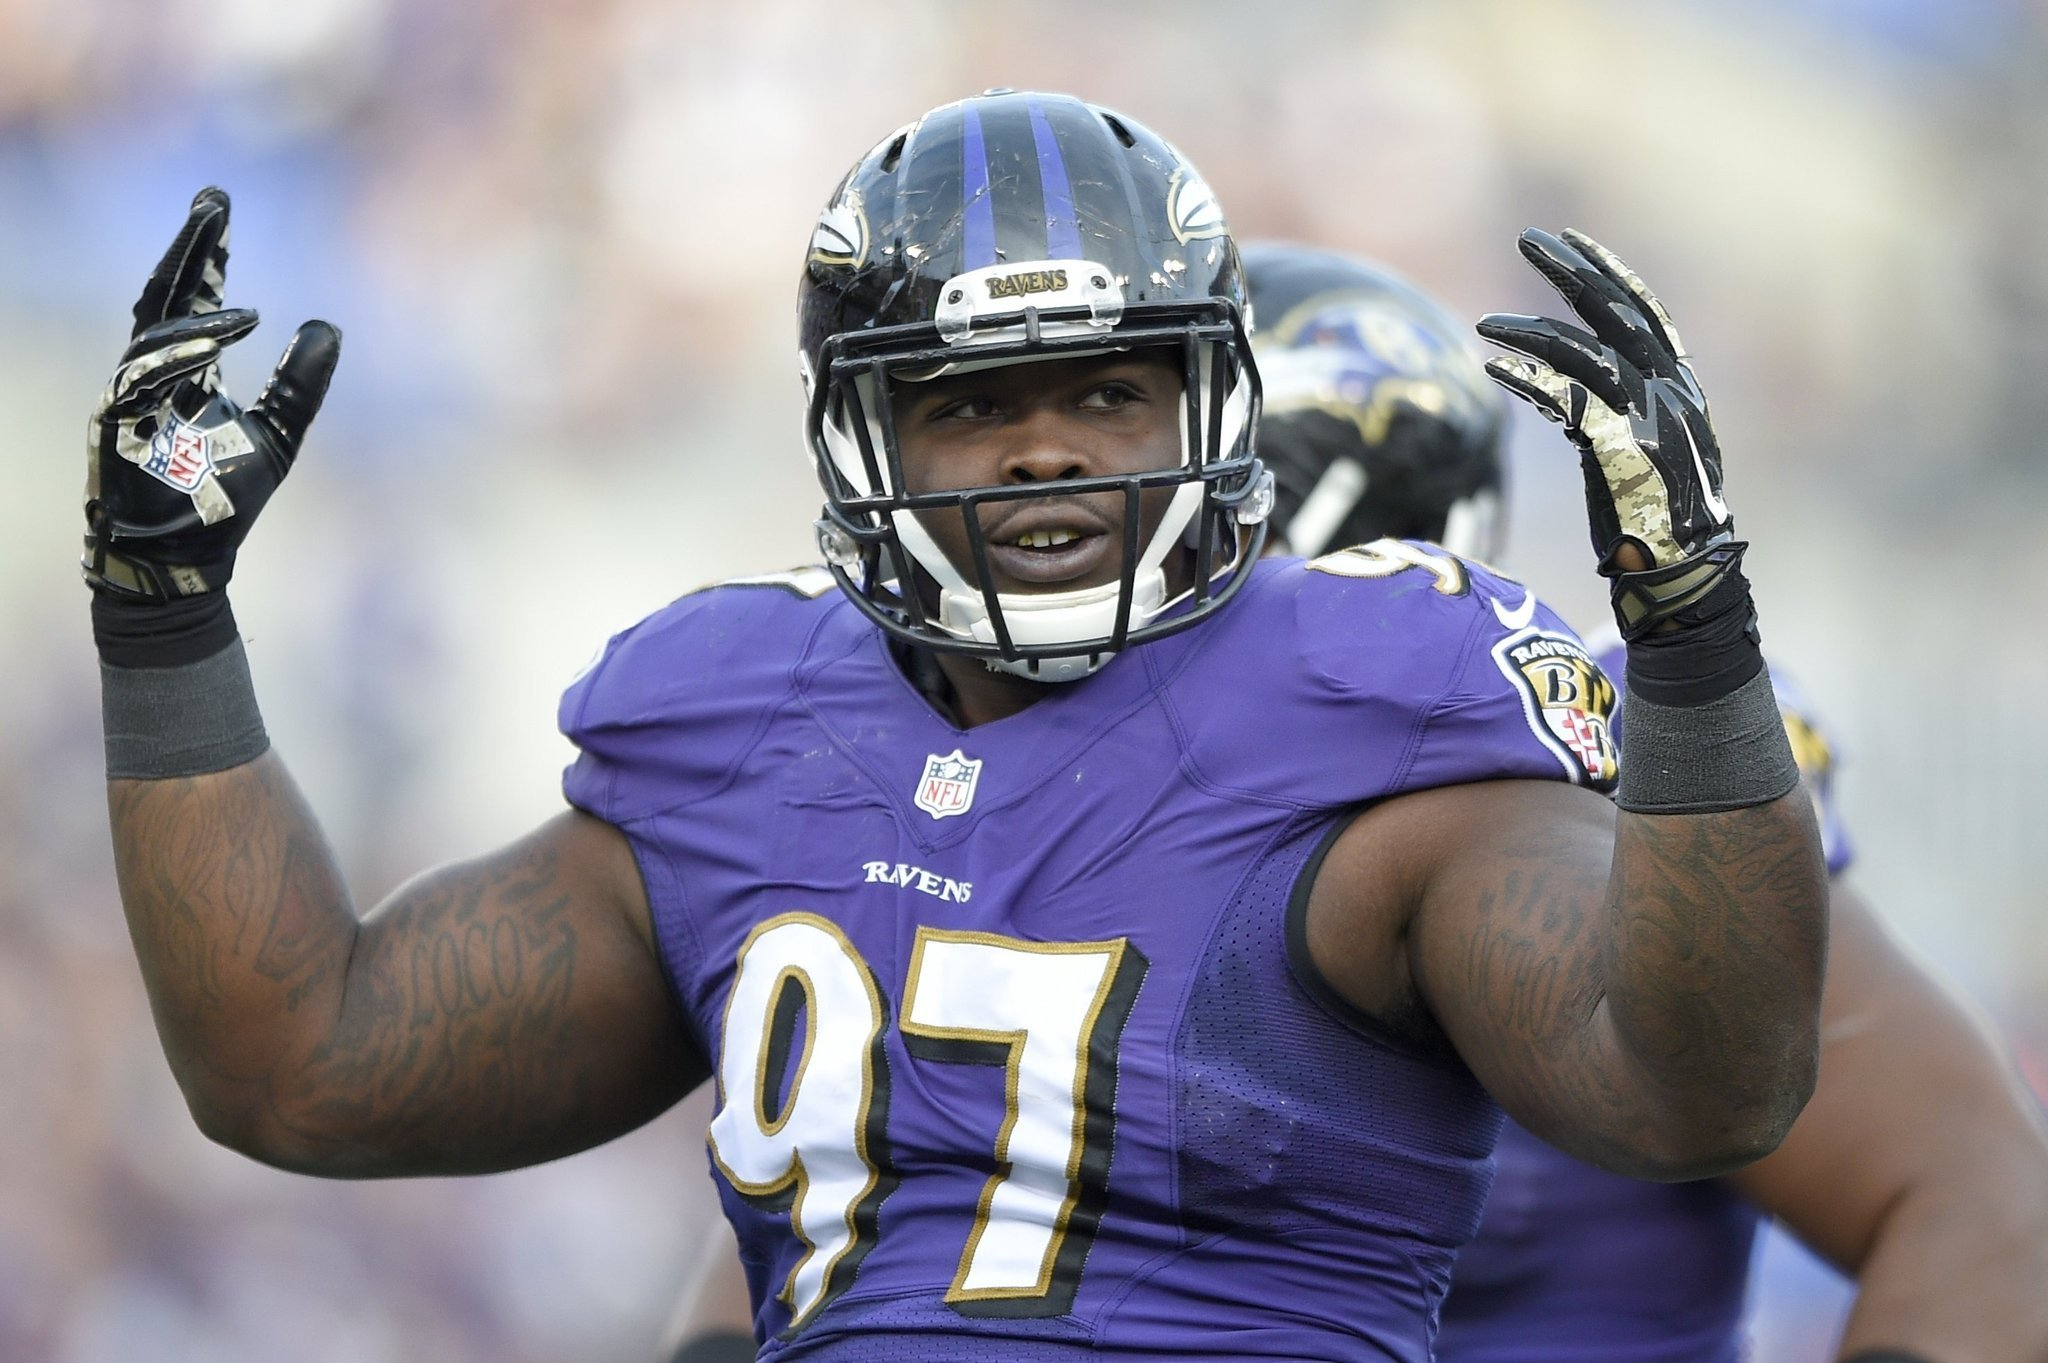 Bal-timmy-jernigan-has-new-number-new-work-ethic-20160526